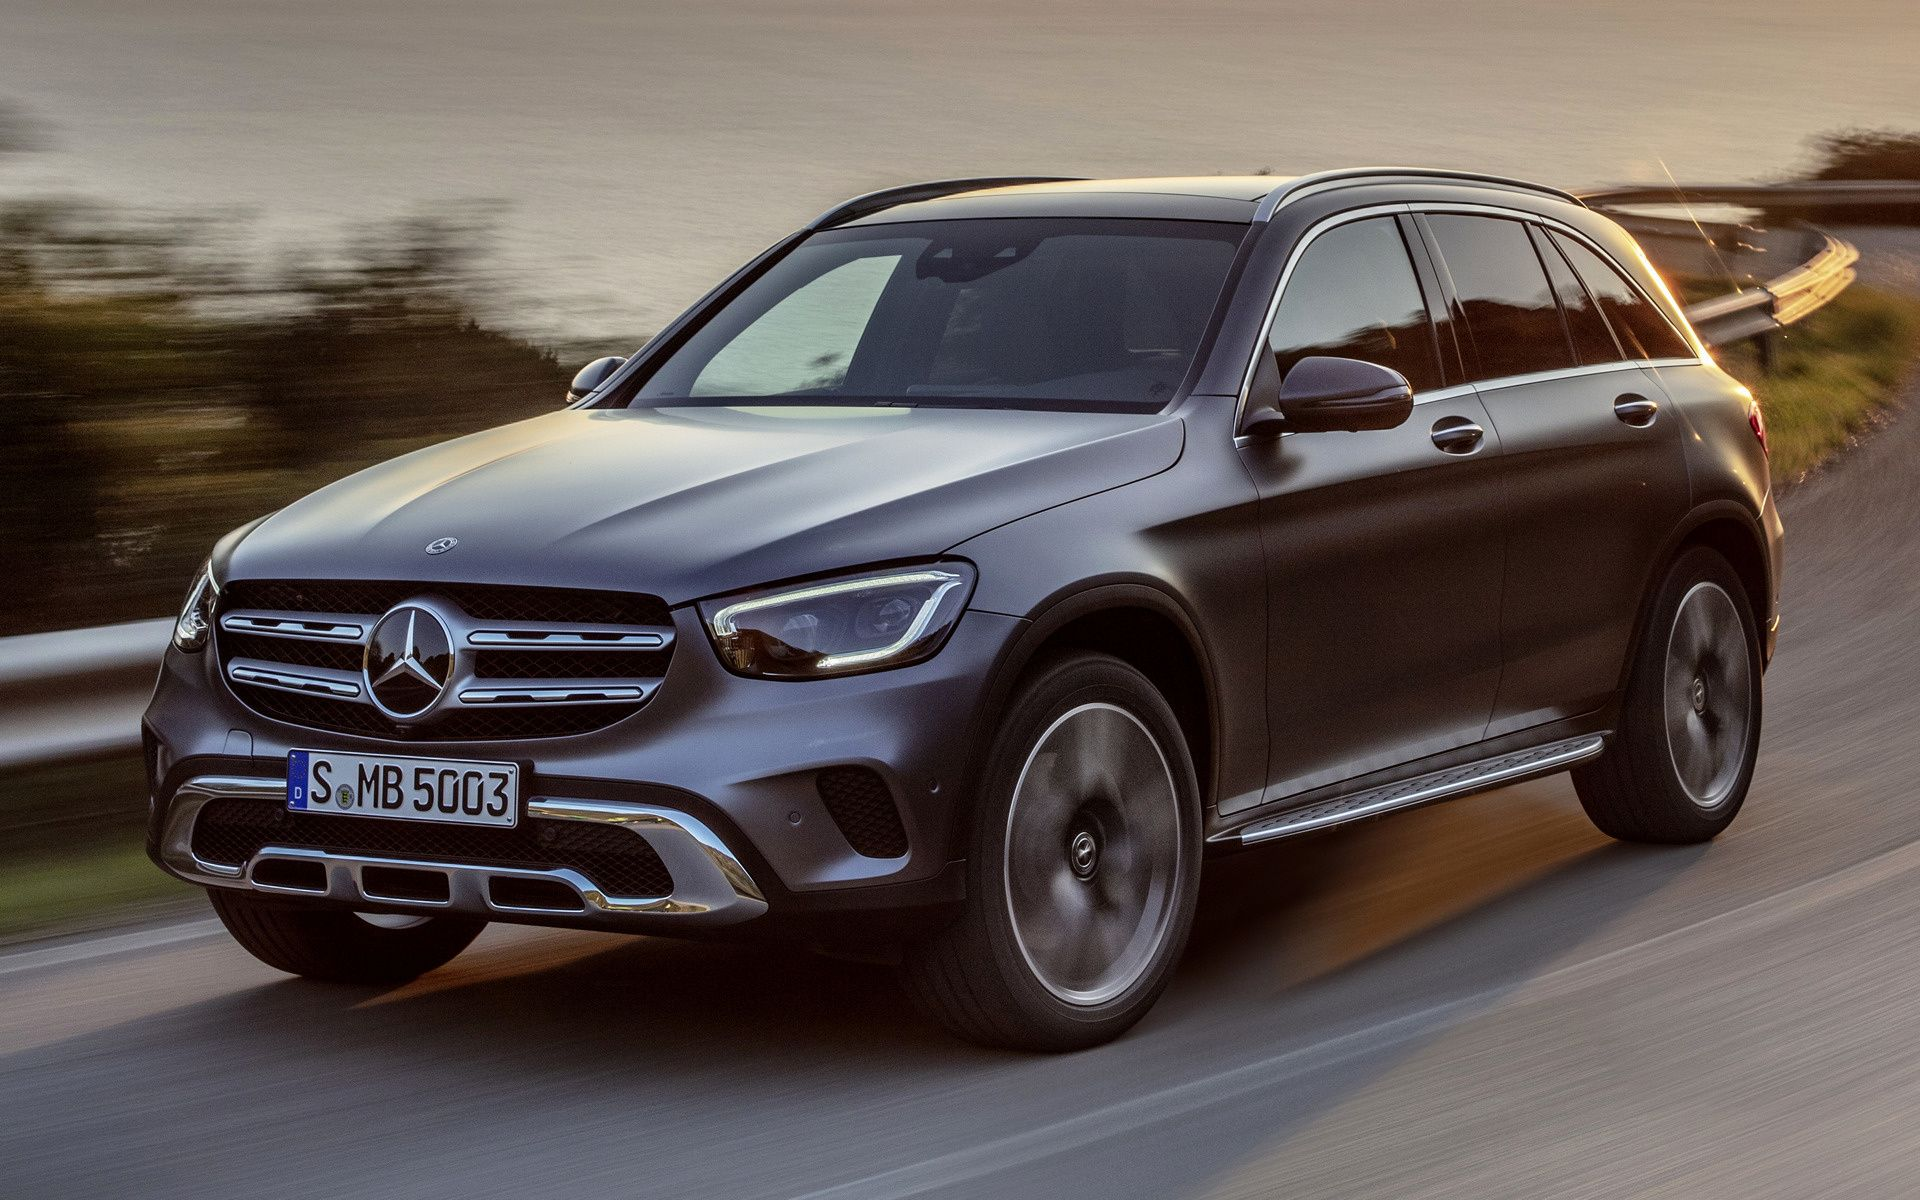 Mercedes Glc Wallpapers Top Free Mercedes Glc Backgrounds Wallpaperaccess